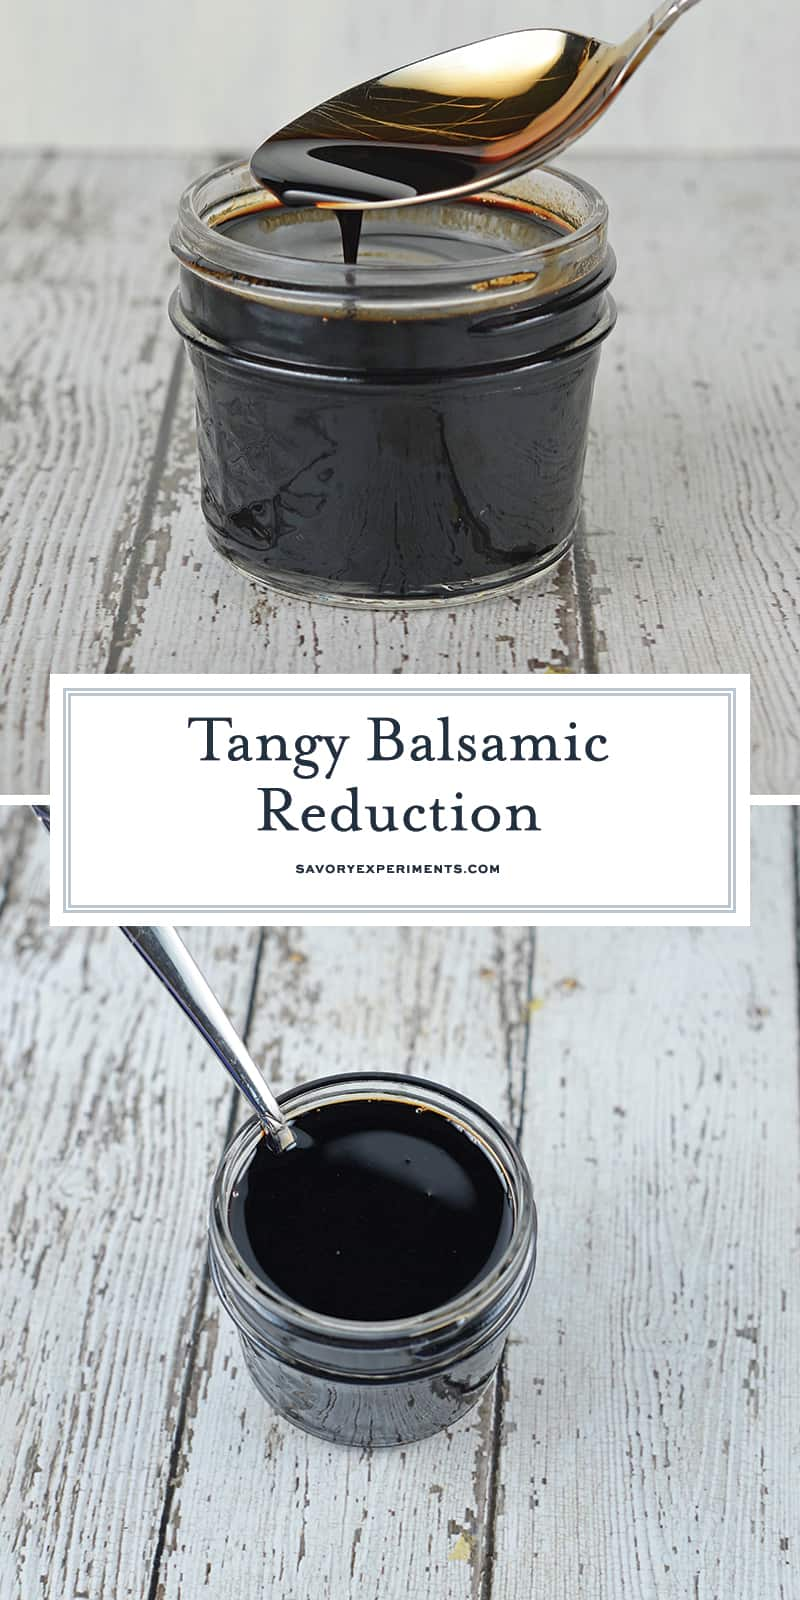 Easy Balsamic Reduction Sauce takes any meal from boring to sophisticated! Two ingredients and it is ready in just minutes! #balsamicreductionsauce www.savoryexperiments.com